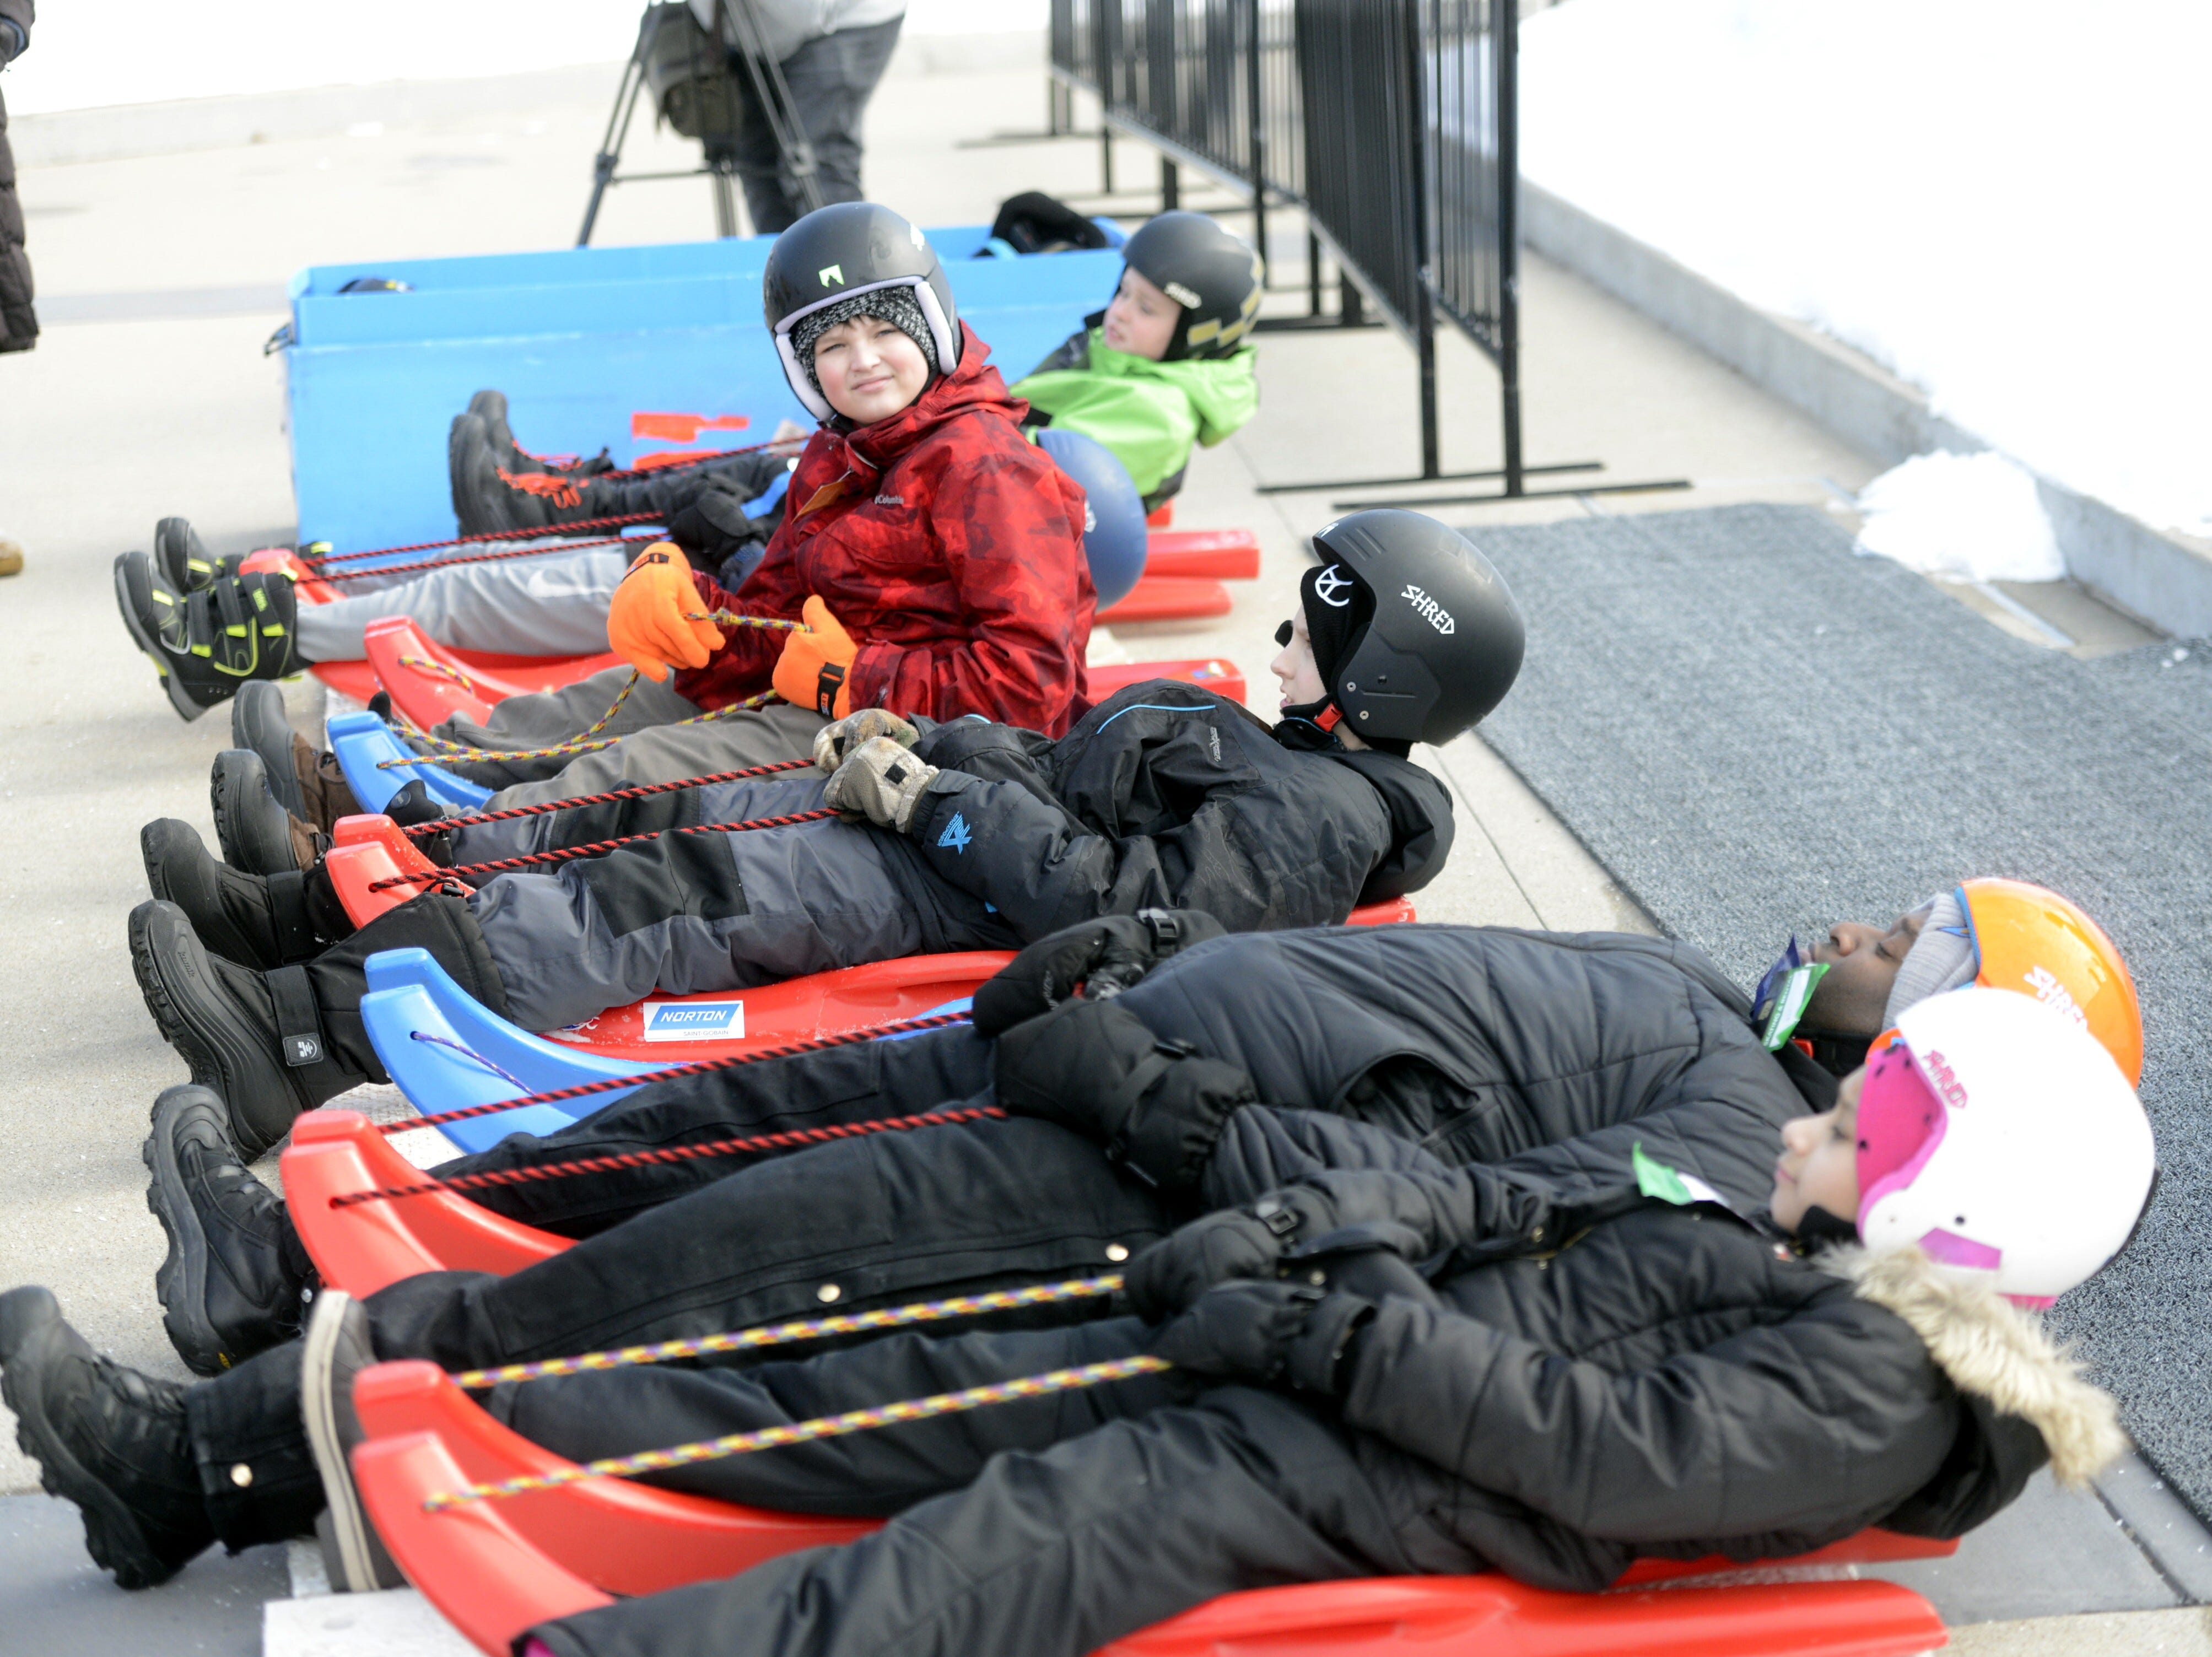 Participants practice for the luge course at the Titletown Winter Games on Saturday, Feb. 16, 2019.